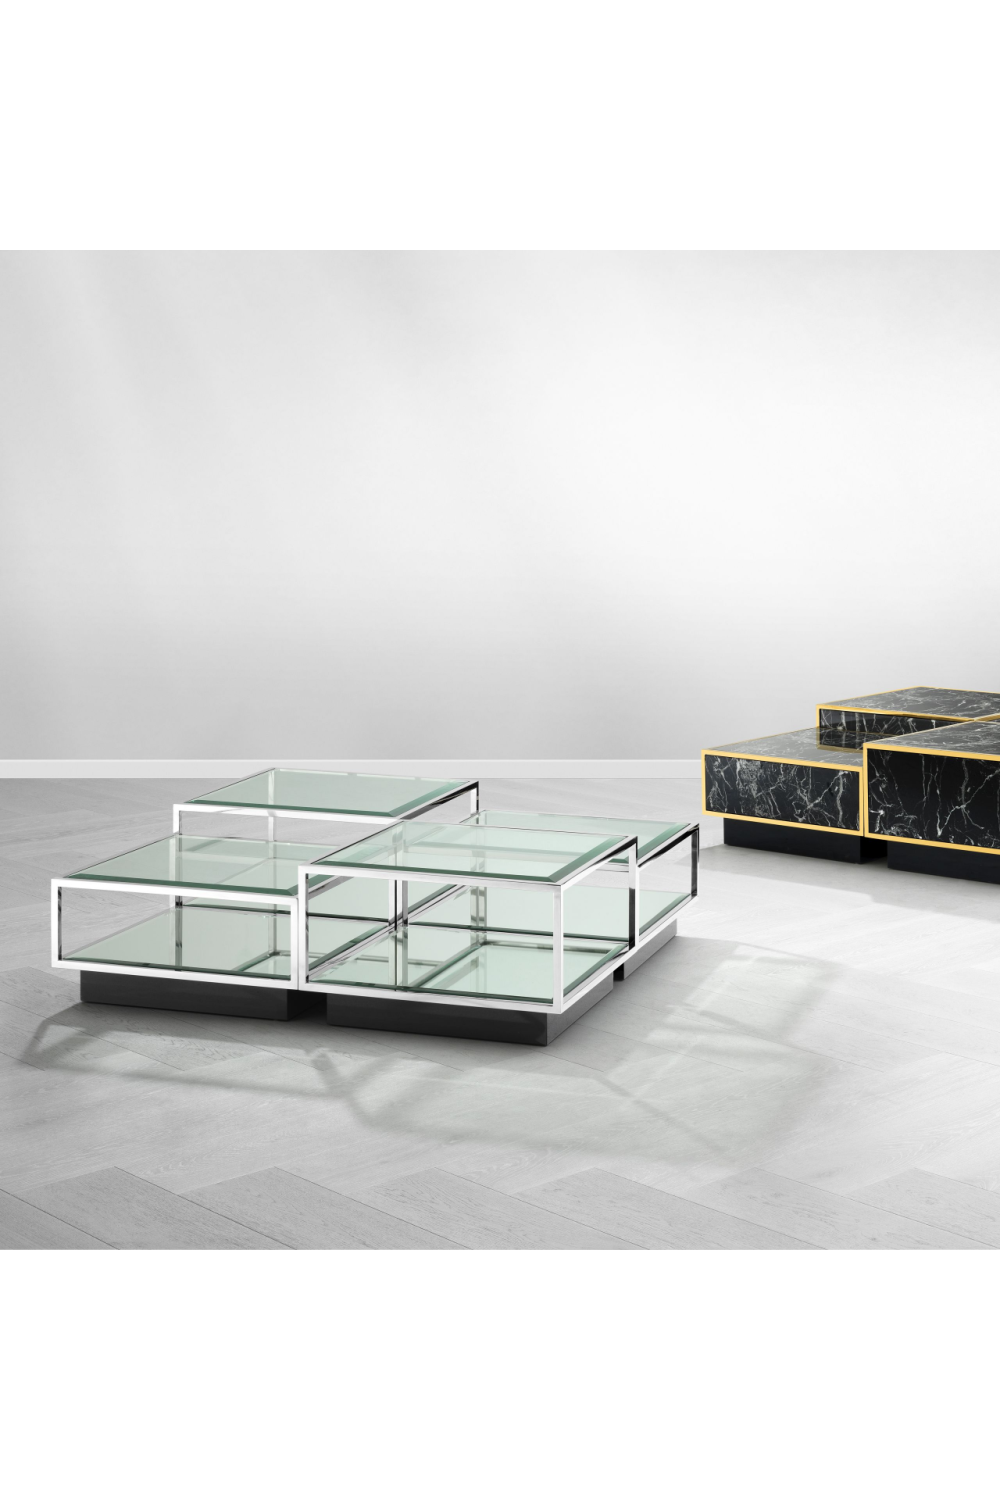 Multi Level Coffee Table Set| Eichholtz Tortona |#1 Eichholtz Retailer